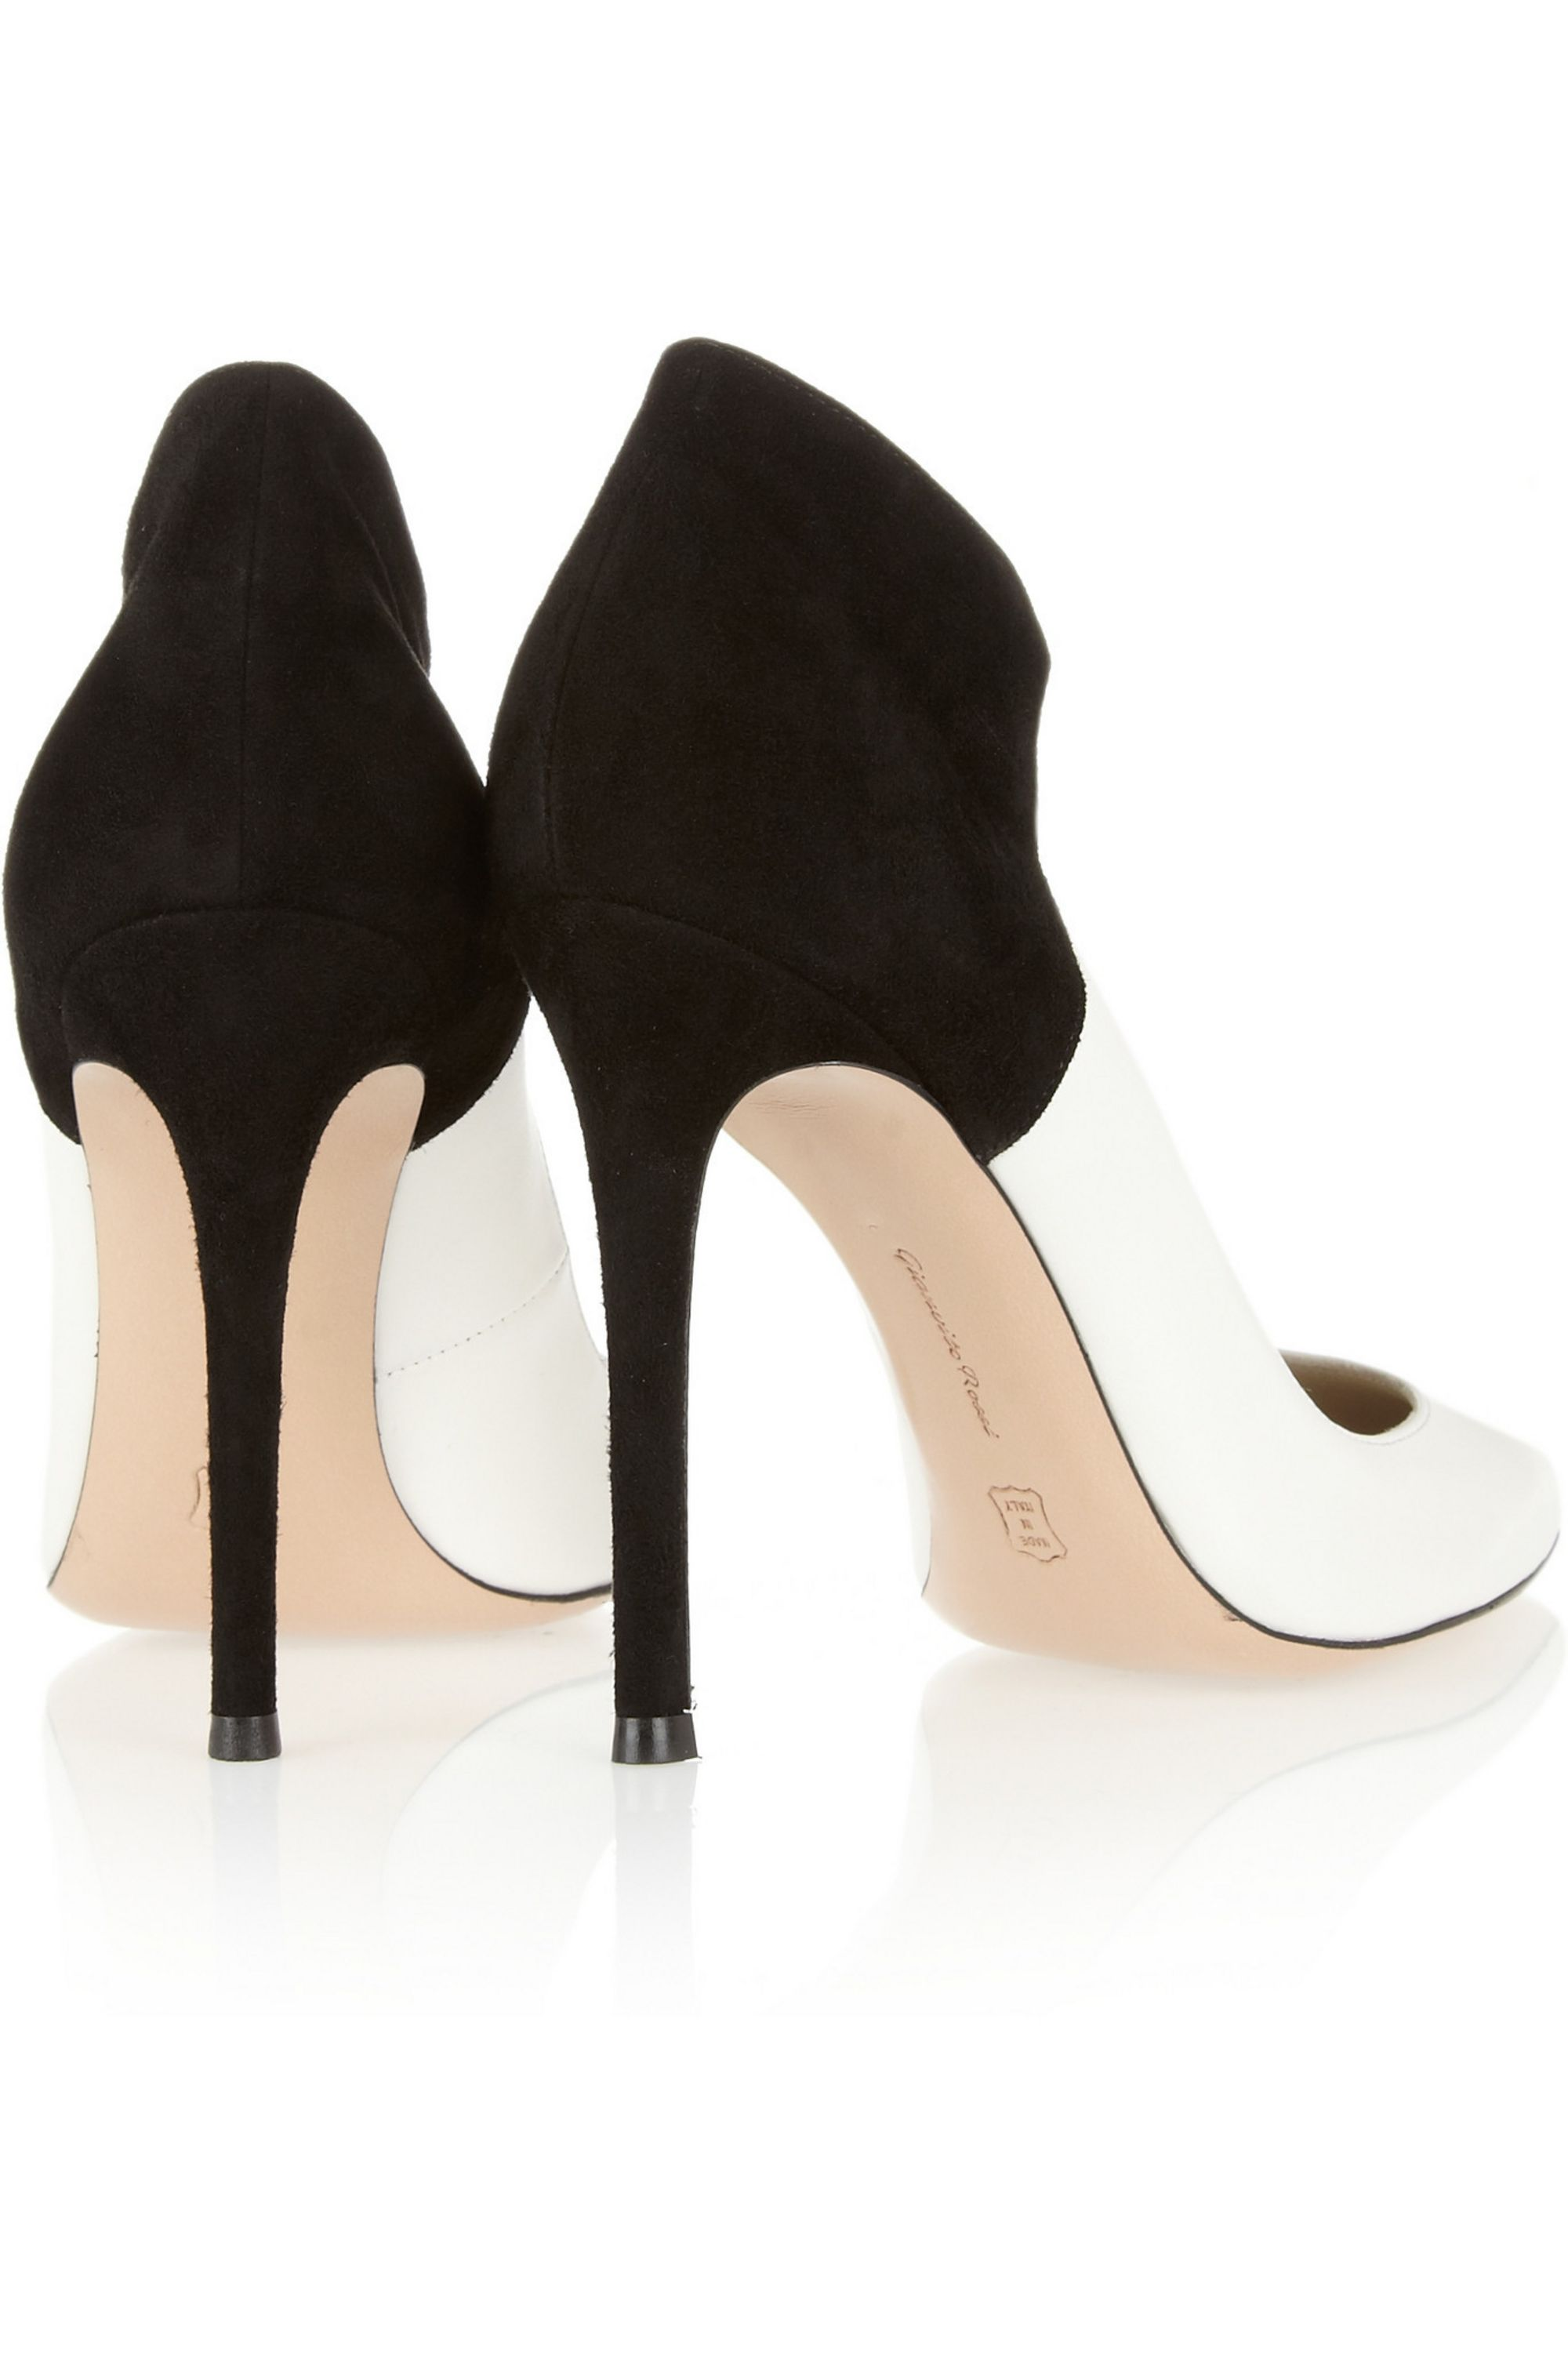 Gianvito Rossi Two-tone leather and suede pumps